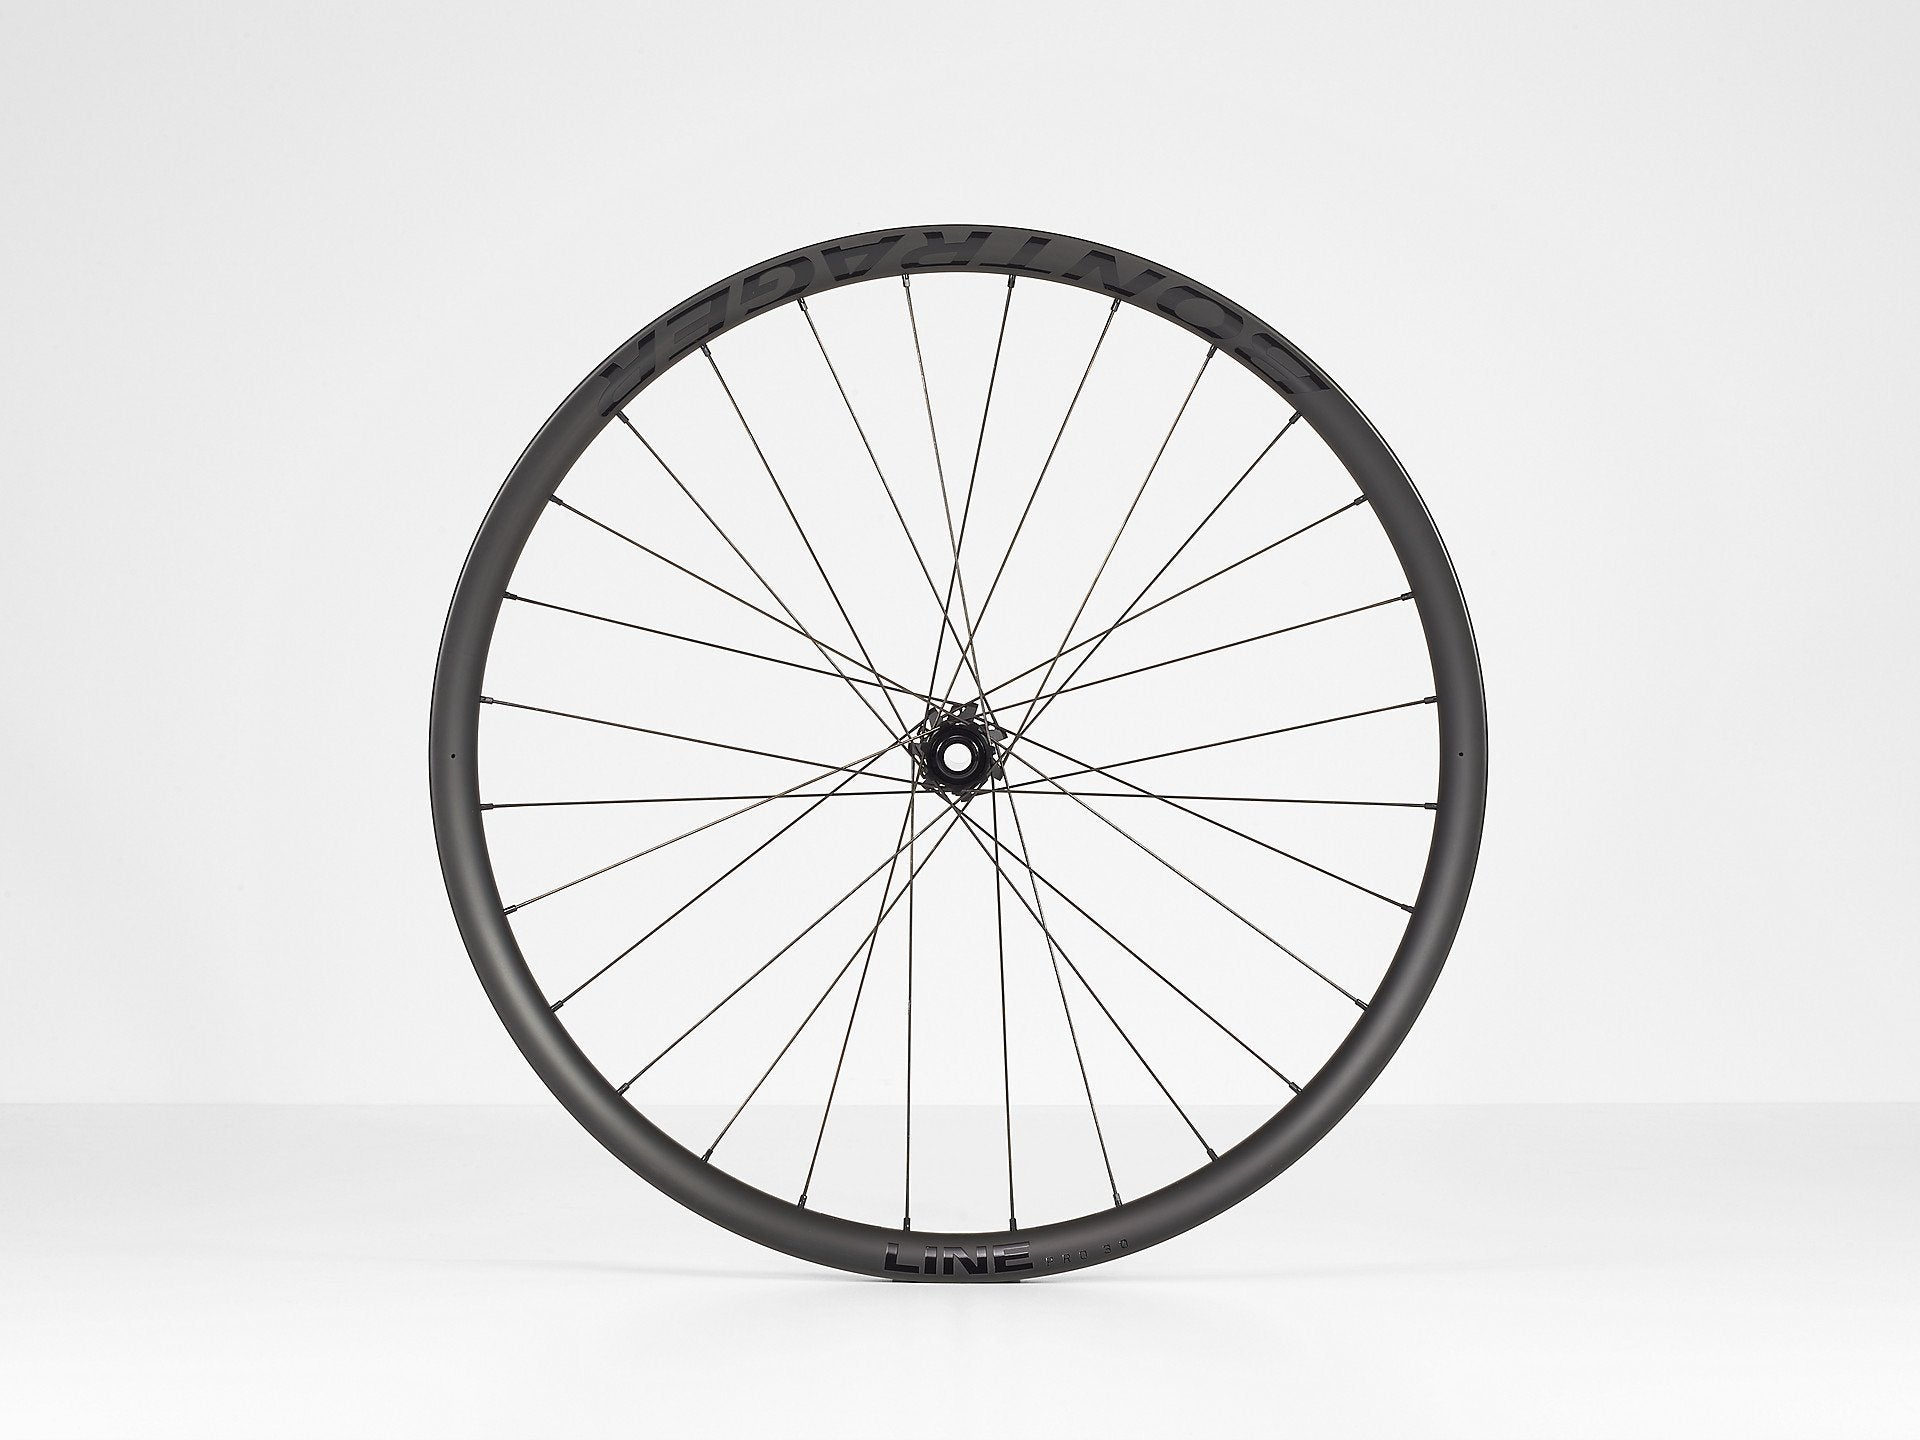 Bontrager Line Pro 30 27.5 Disc Wheel MY21 - Cycles Galleria Melbourne